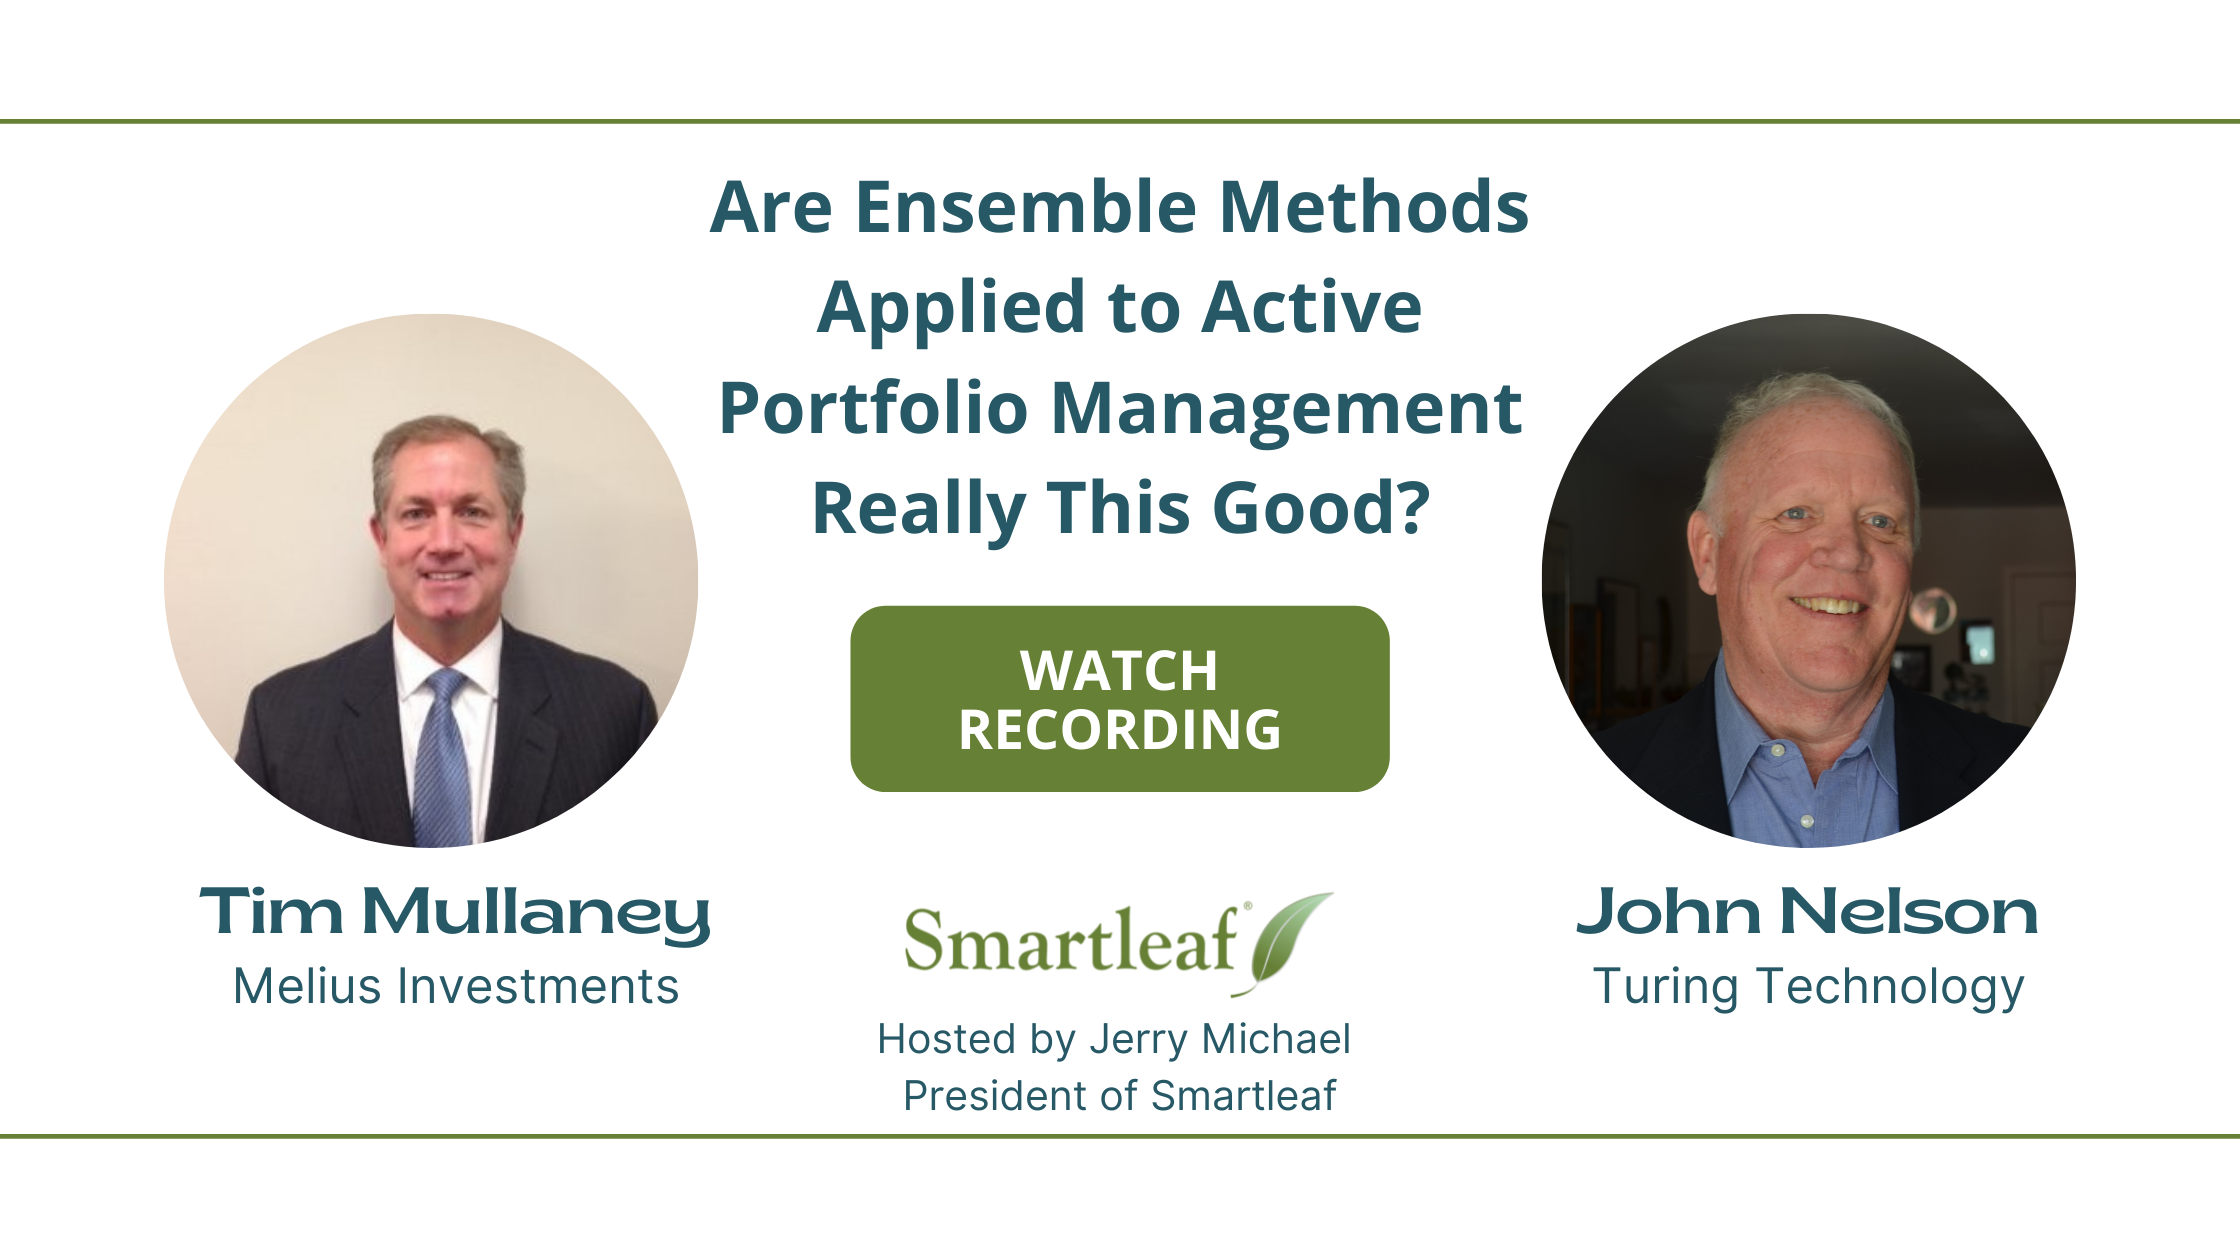 Webinar Recording: Are Ensemble Methods Applied to Active Portfolio Management Really This Good?